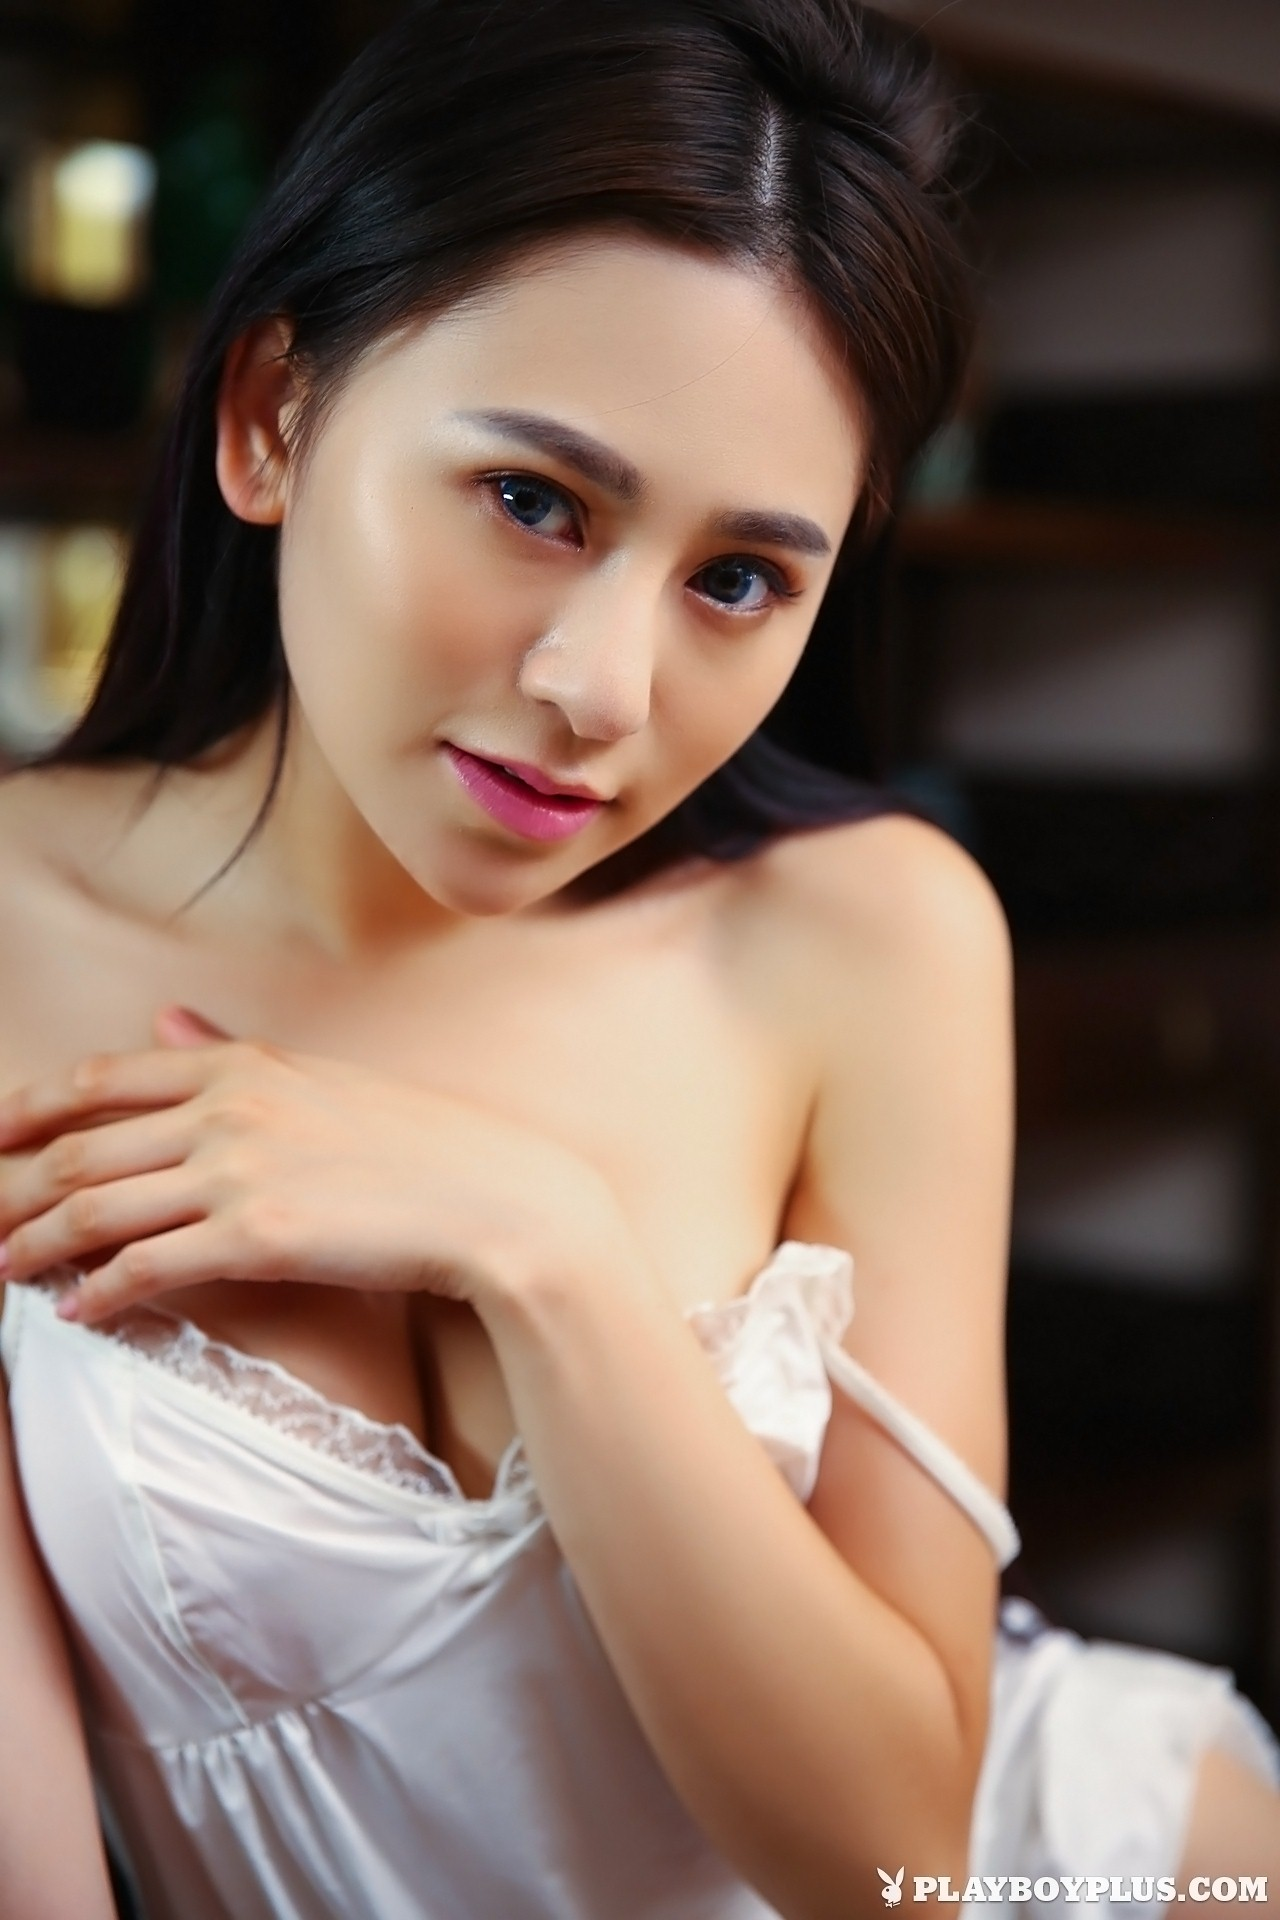 Wu Muxi nude in Innocent Eyes for Playboy | Daily Girls @ Female Update